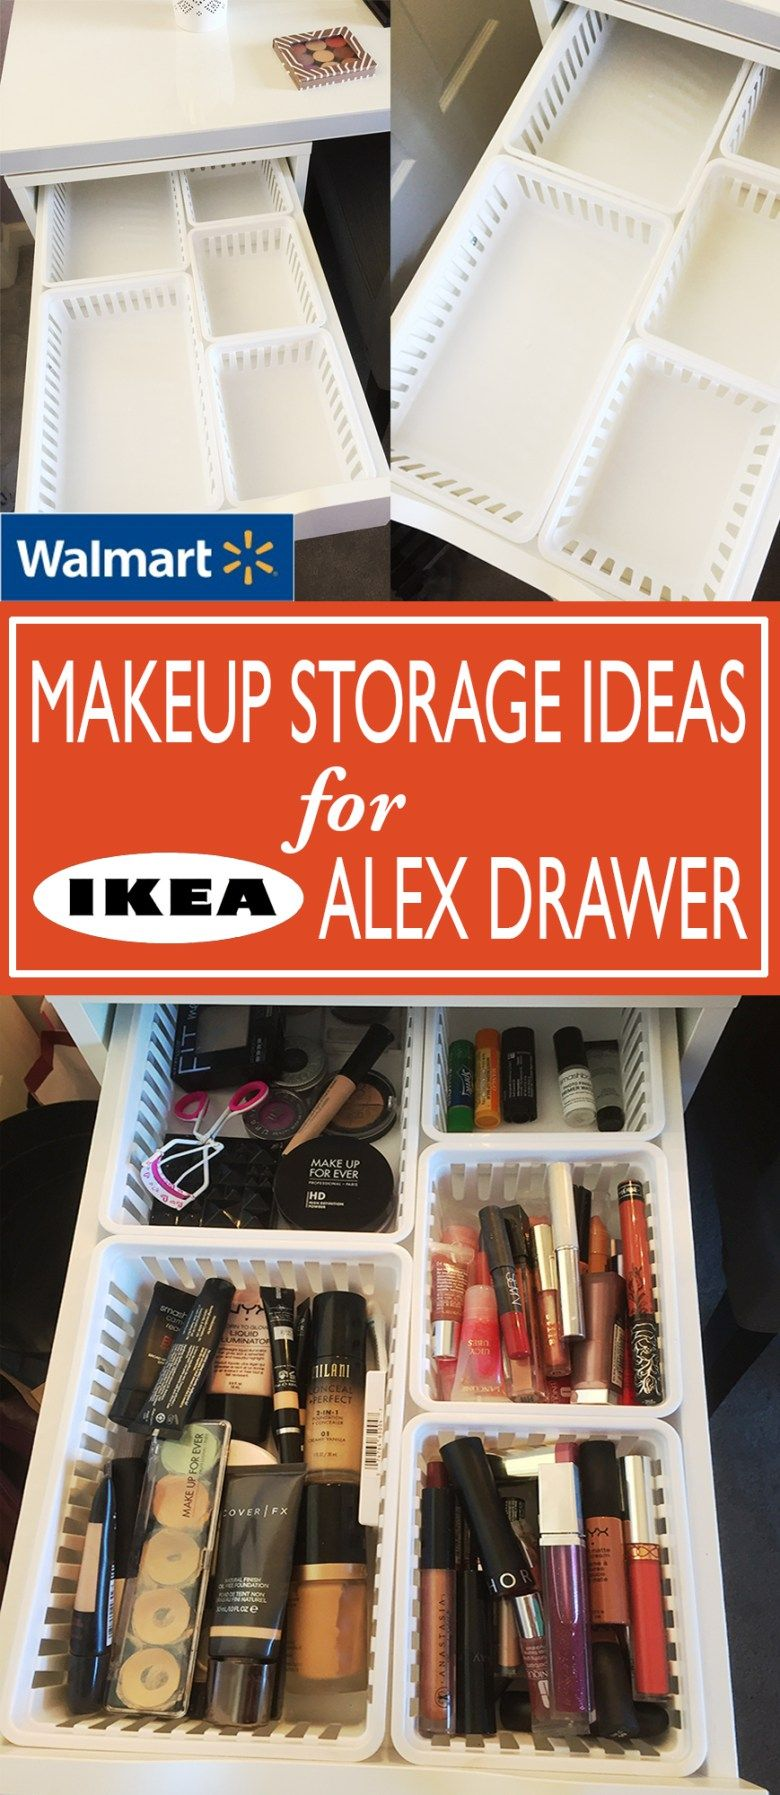 Walmart Makeup Storage Ideas For Ikea Alex Drawers Pinterest